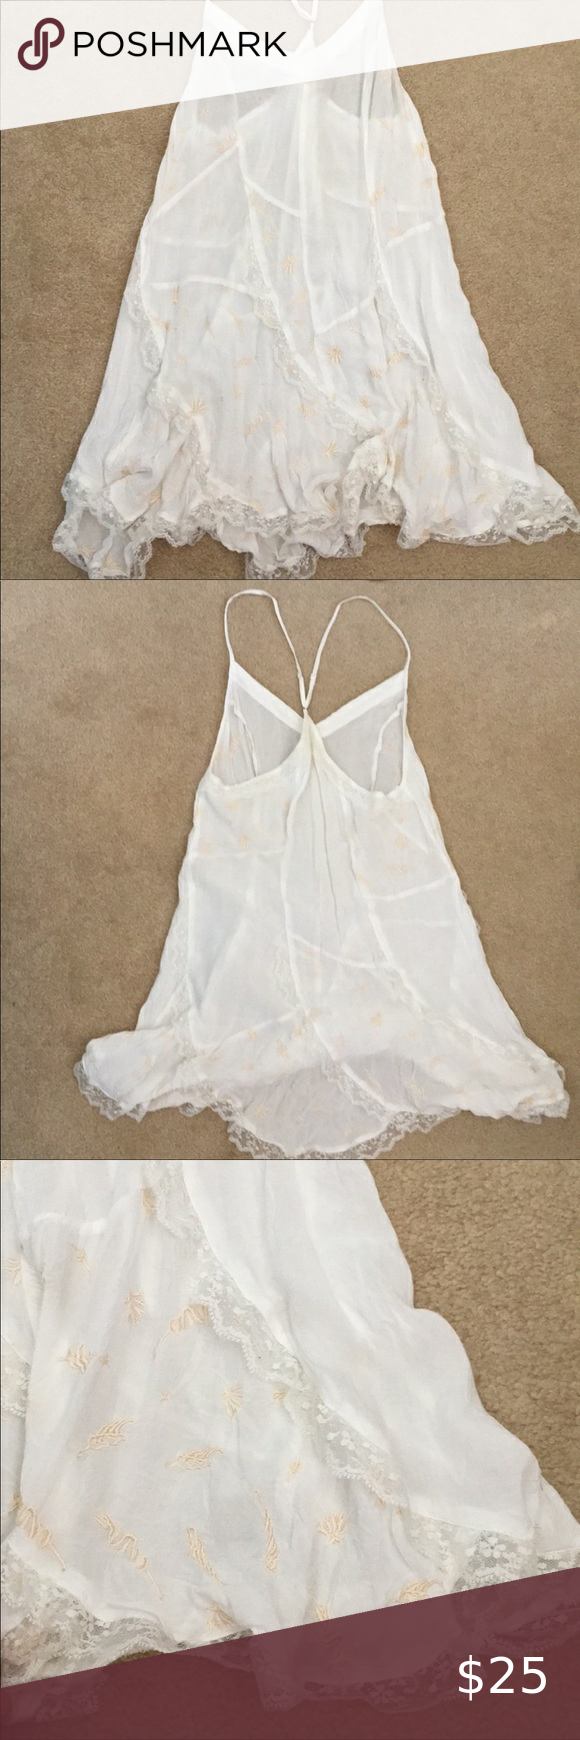 Free People White Embroidered Lace Slip Dress Lace Slip Dress Lace Slip Slip Dress [ 1740 x 580 Pixel ]